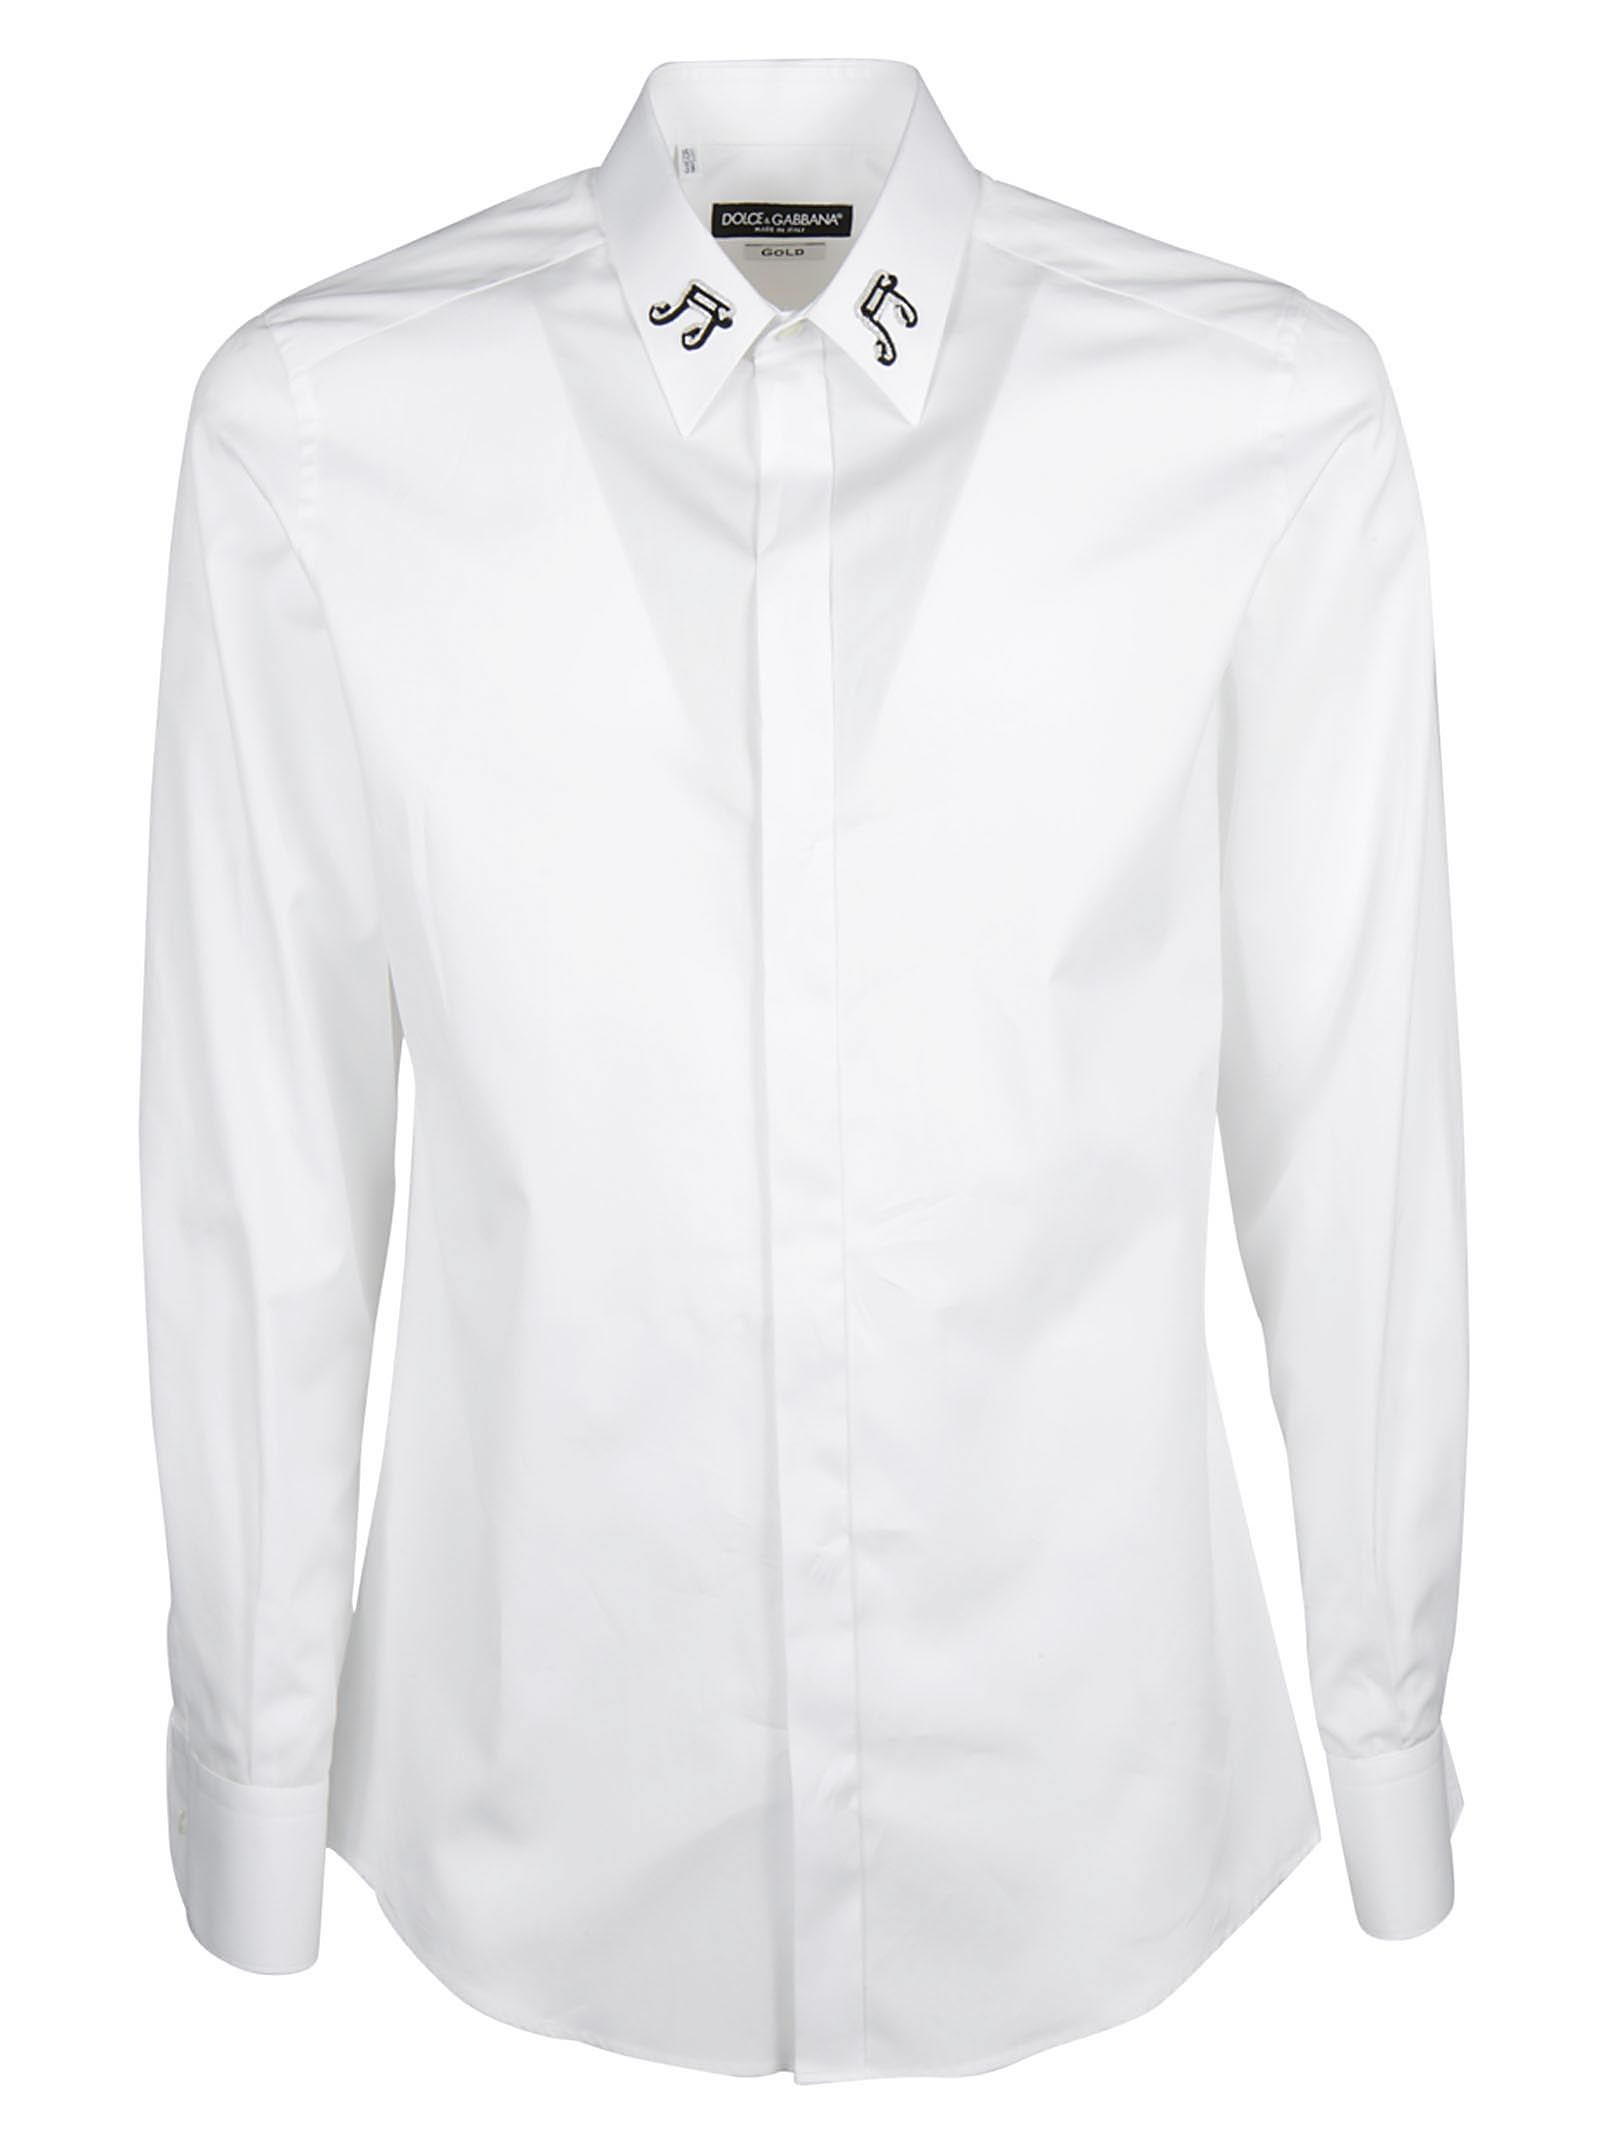 Dolce & Gabbana Note Embroidered Shirt